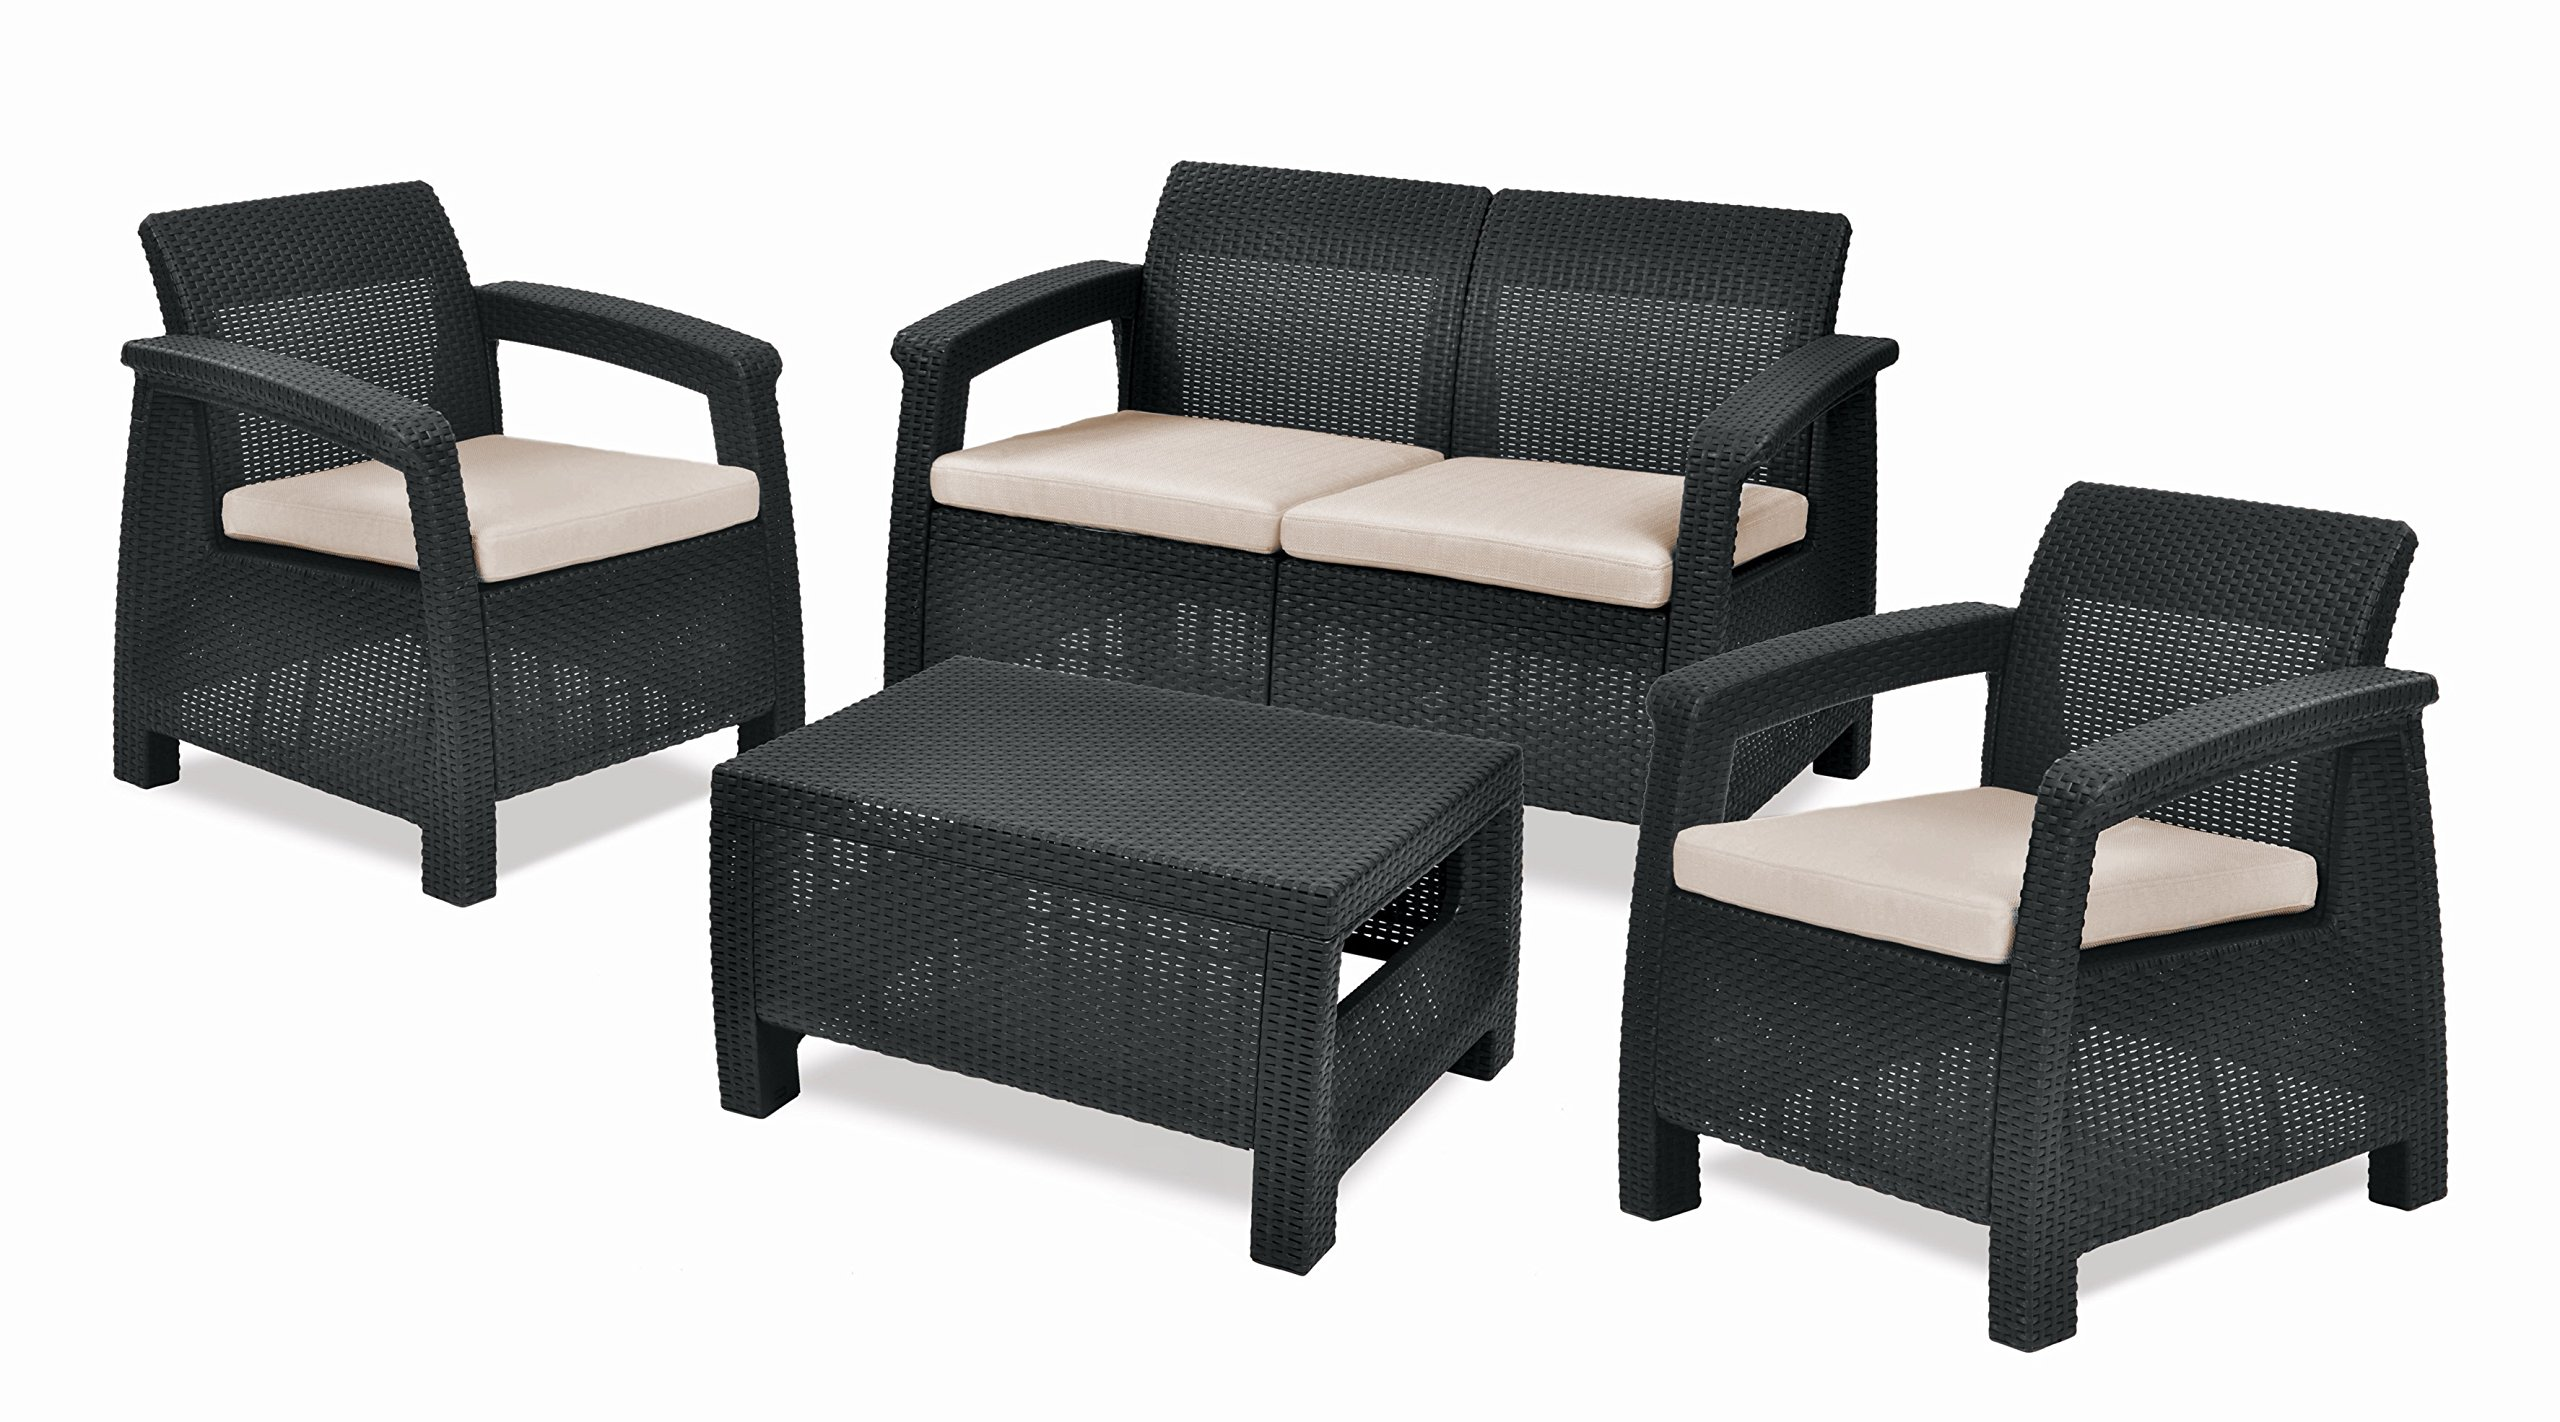 Keter Corfu Outdoor 4 Seater Rattan Sofa Furniture Set with Accent ...